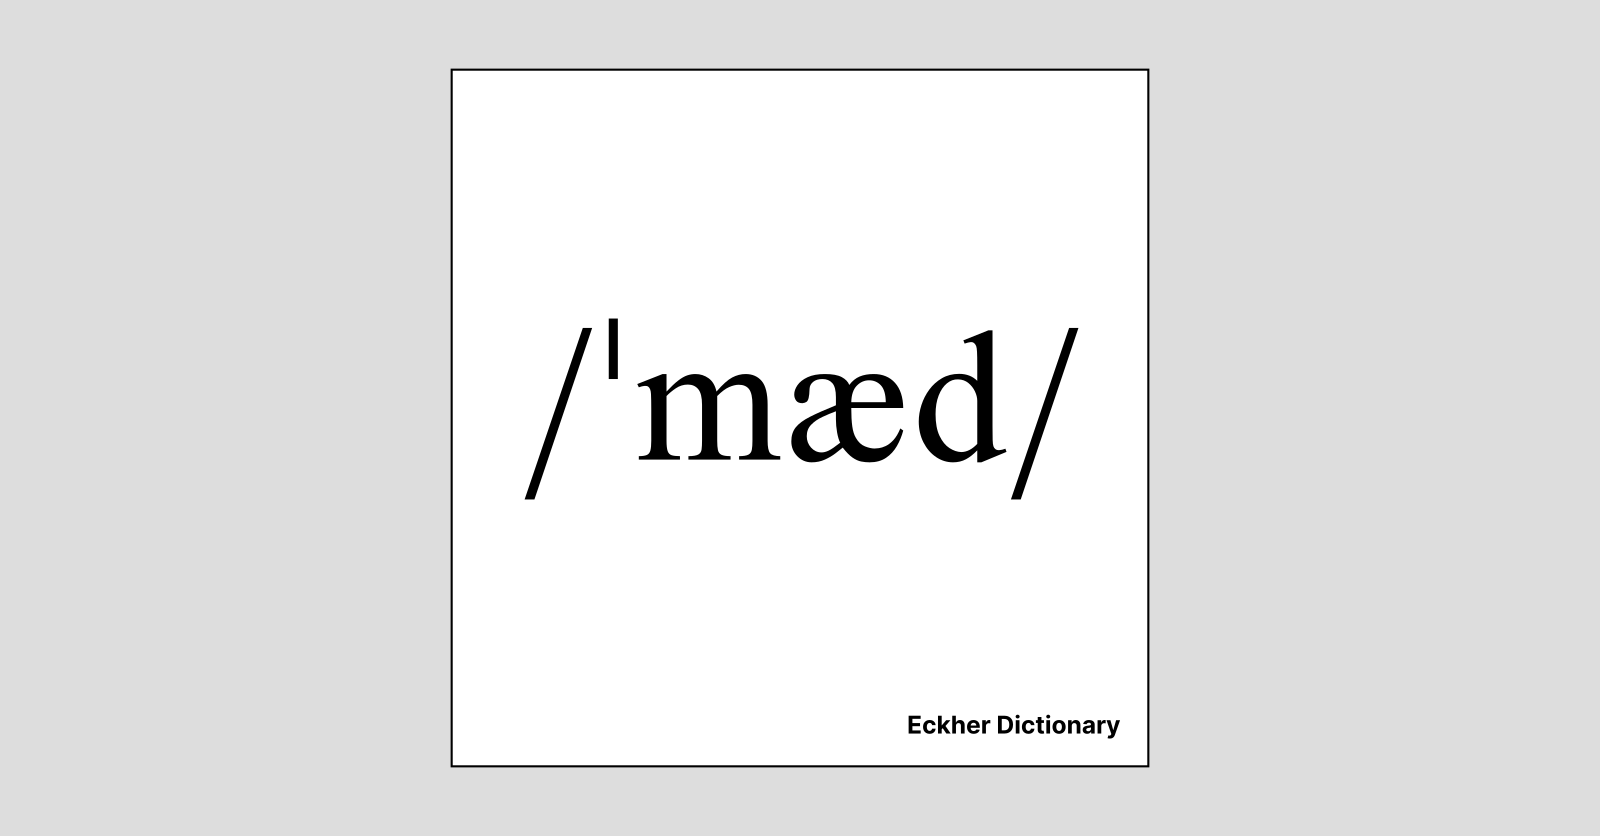 mad - Eckher Dictionary